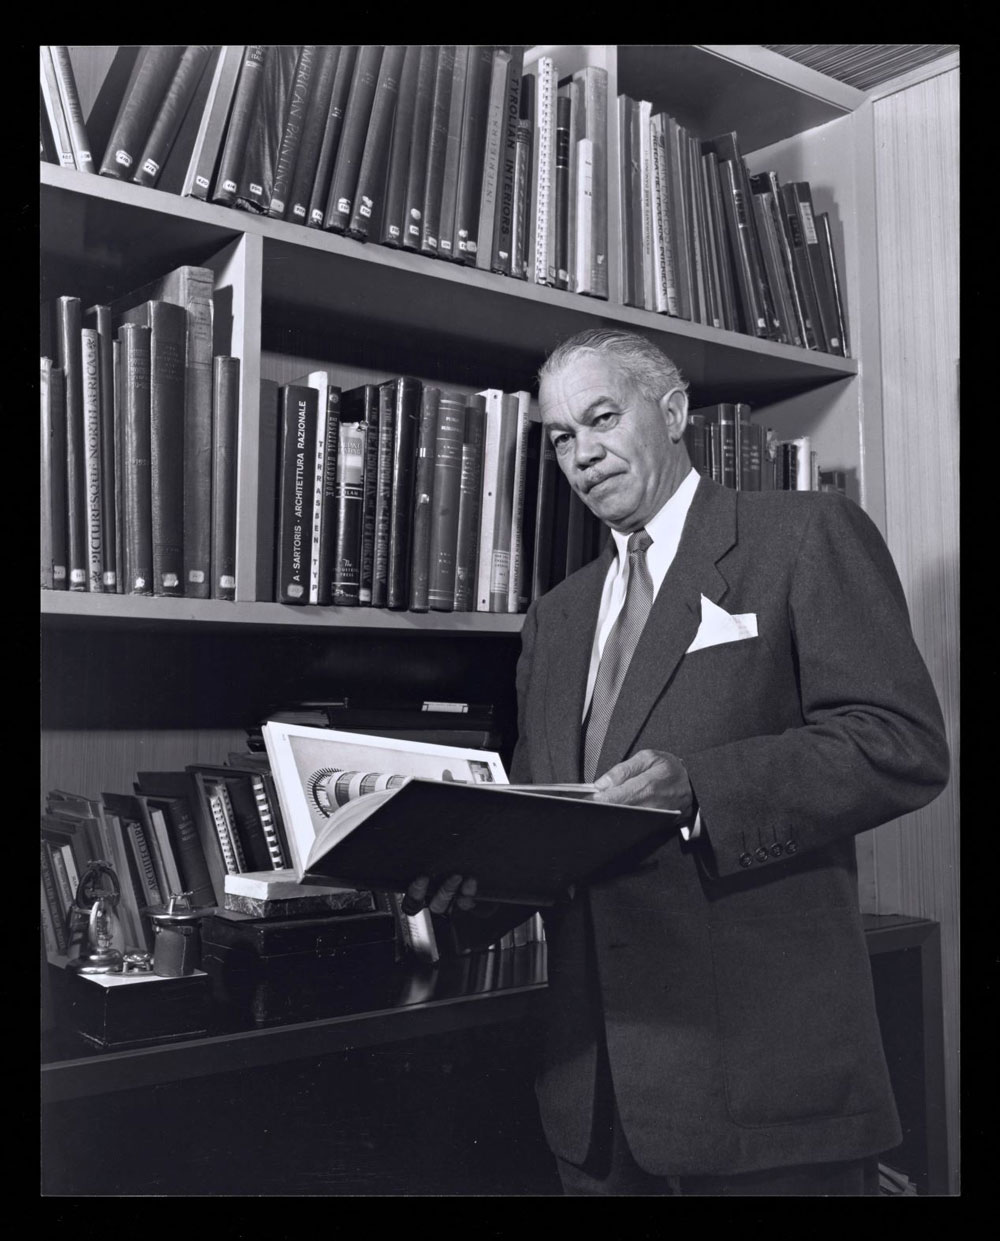 Portrait of Paul R. Williams, photography by Julius Shulman, 1952, Gelatin Silver Print, © J. Paul Getty Trust. Getty Research Institute, Los Angeles (2004.R.10)